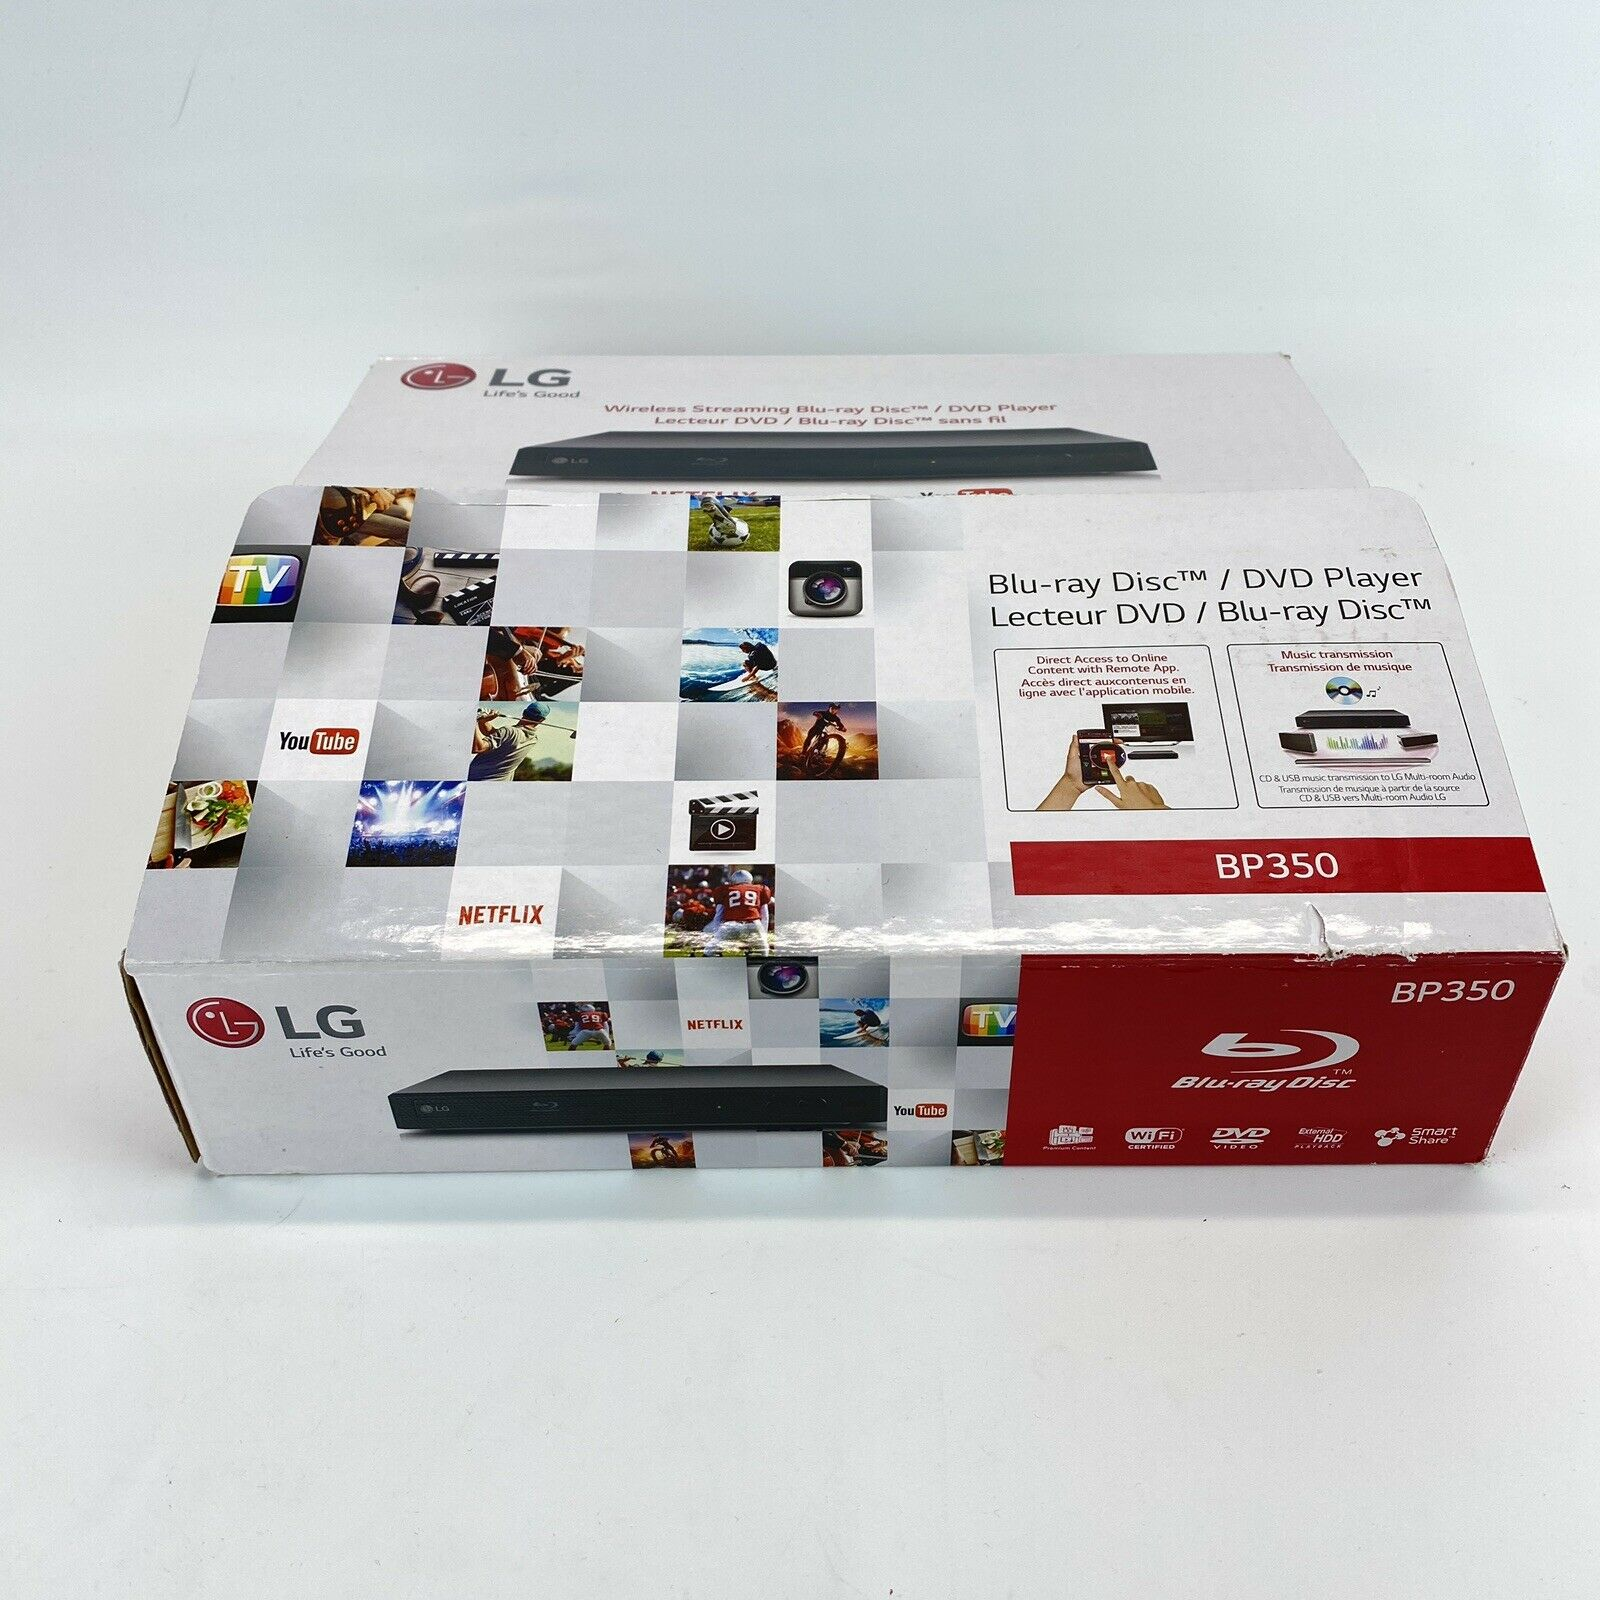 LG BP350 Blu-Ray Player  with Wi-Fi Streaming open box new box bp350 new open streaming